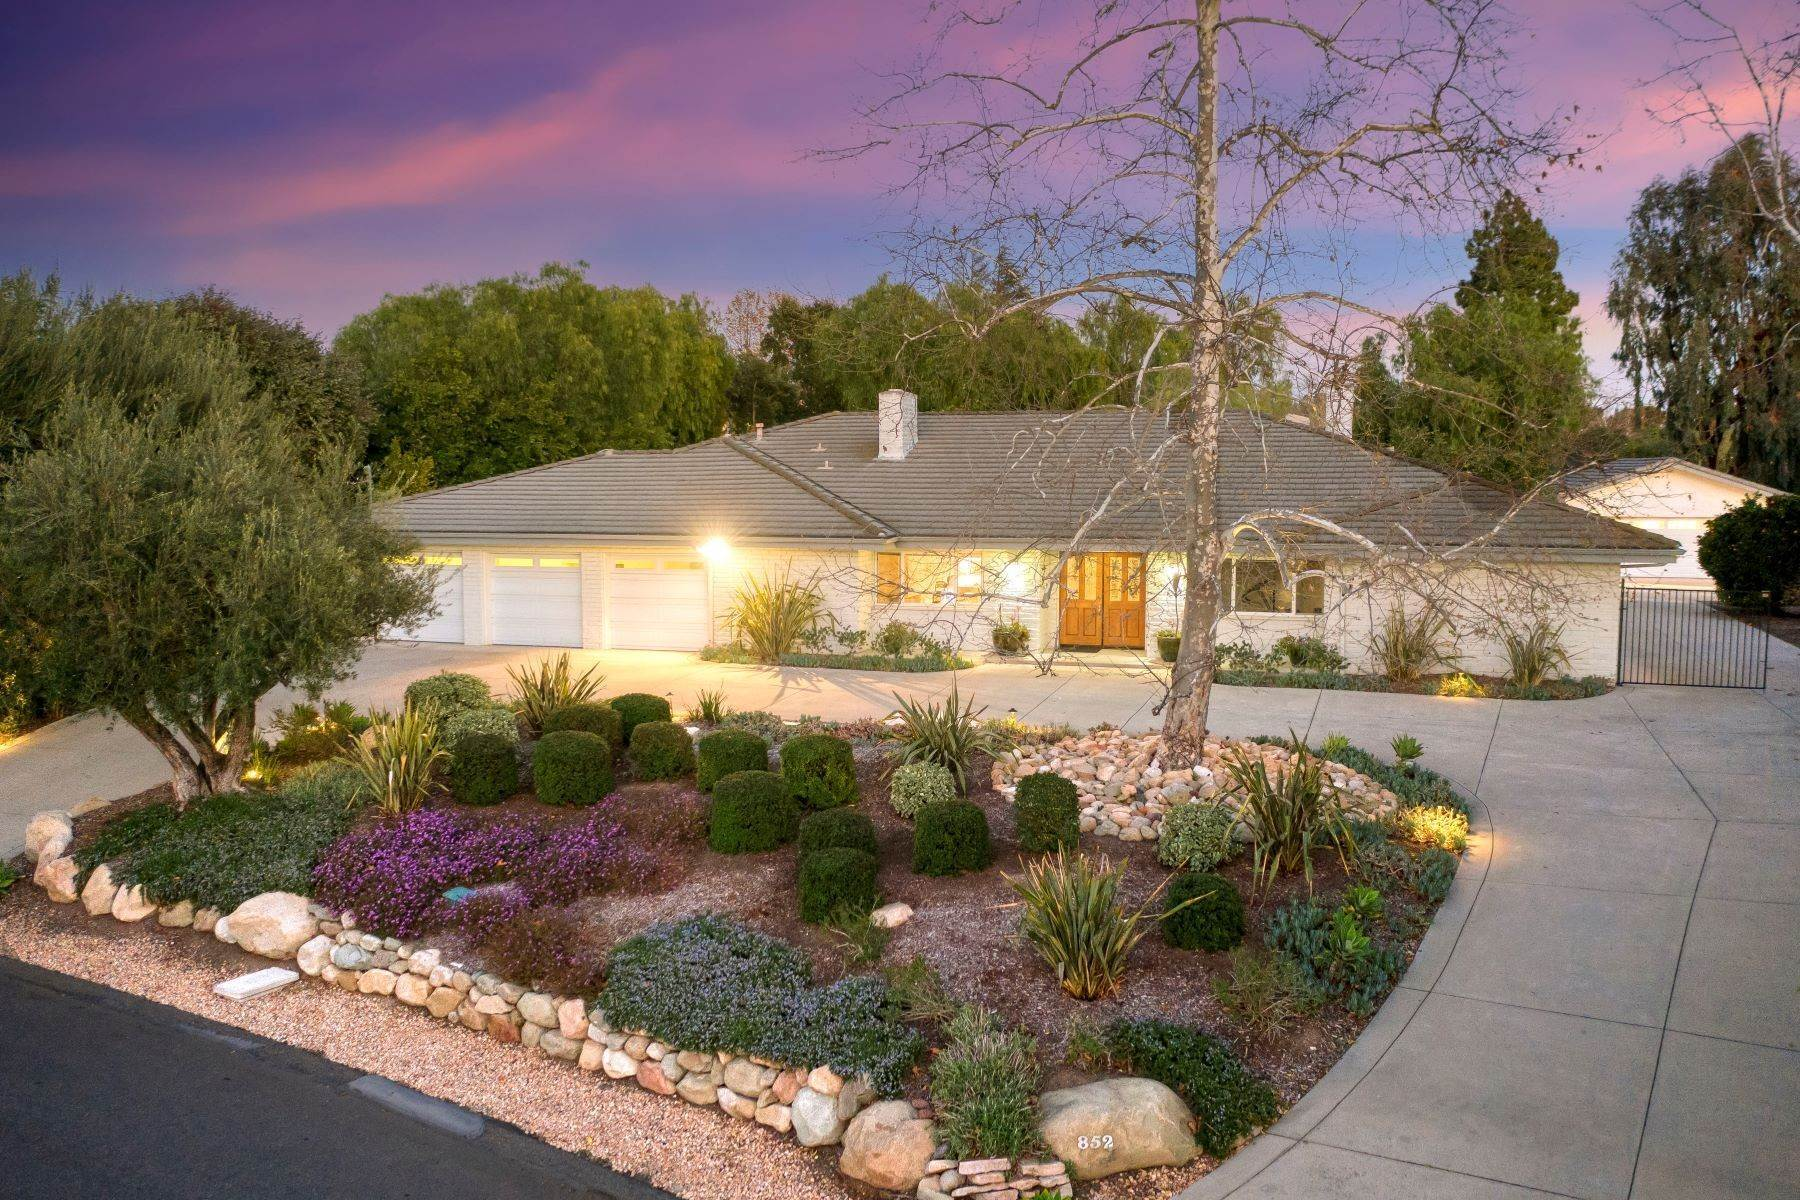 Single Family Homes for Sale at Single Story Lynn Ranch on 3/4 Acre 852 Camino El Carrizo Thousand Oaks, California 91360 United States